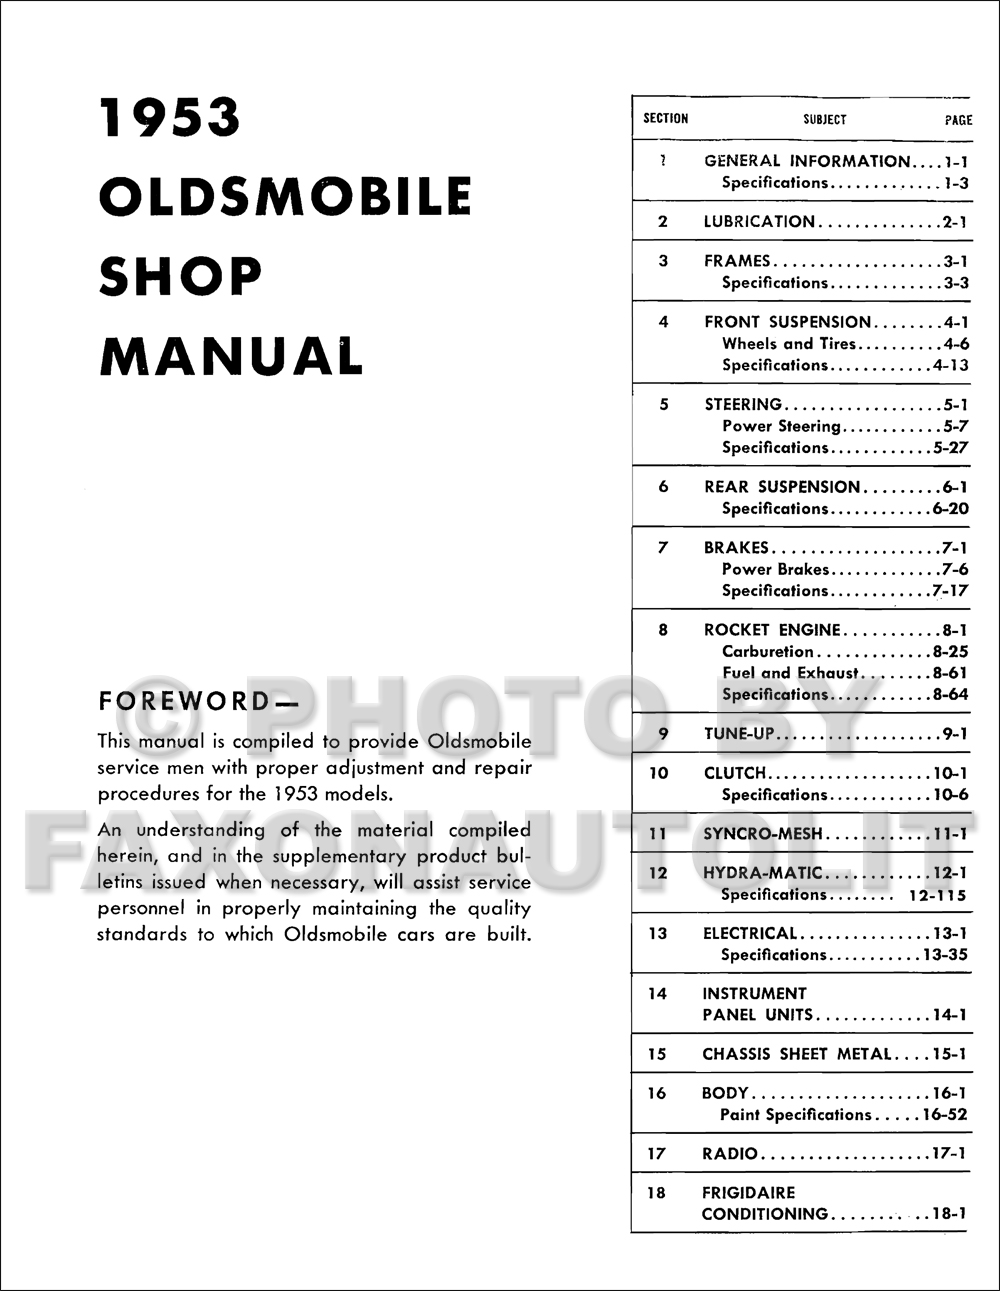 1953 Oldsmobile Shop Manual Reprint. click on thumbnail to zoom